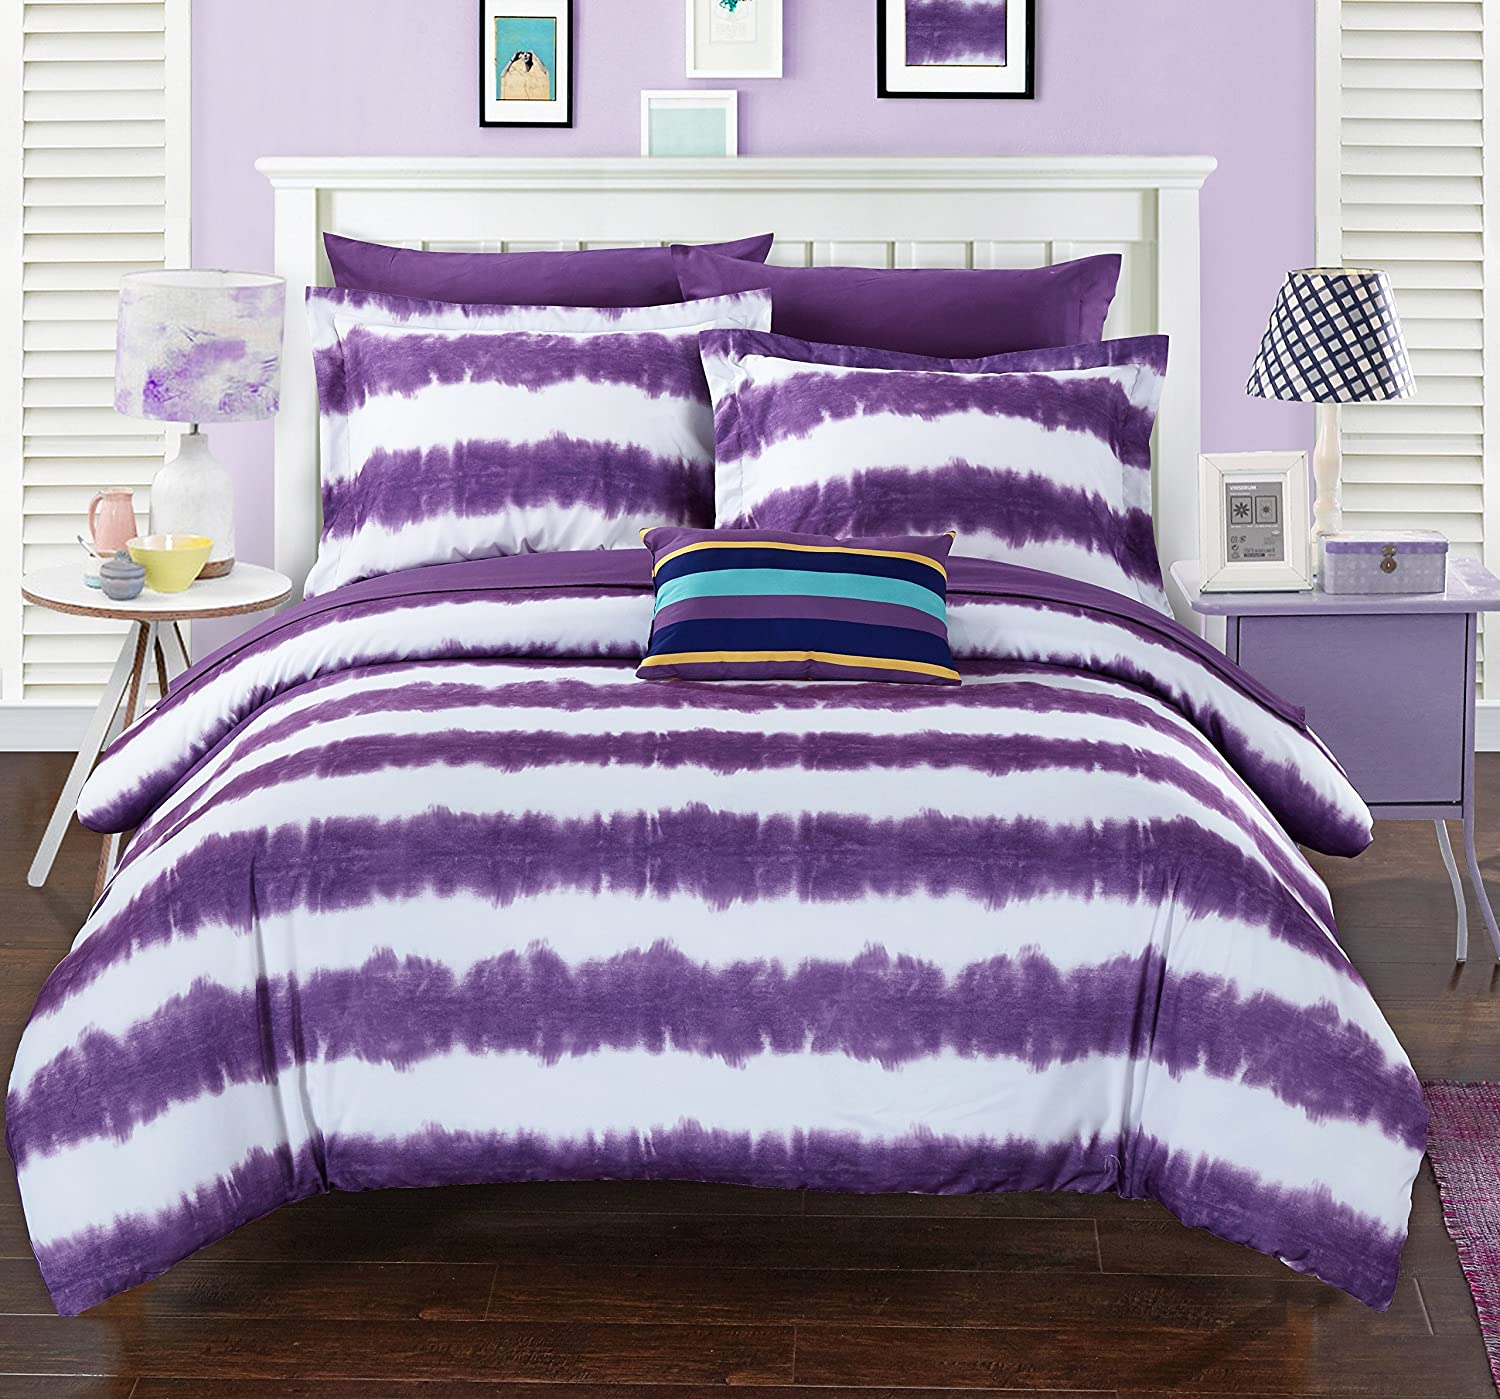 california size dreaded solid uncategorized full covers sets black purple and exceptional sheets king cotton of duvets comforter bedding picture duvet bed pictures mauve incredible dark